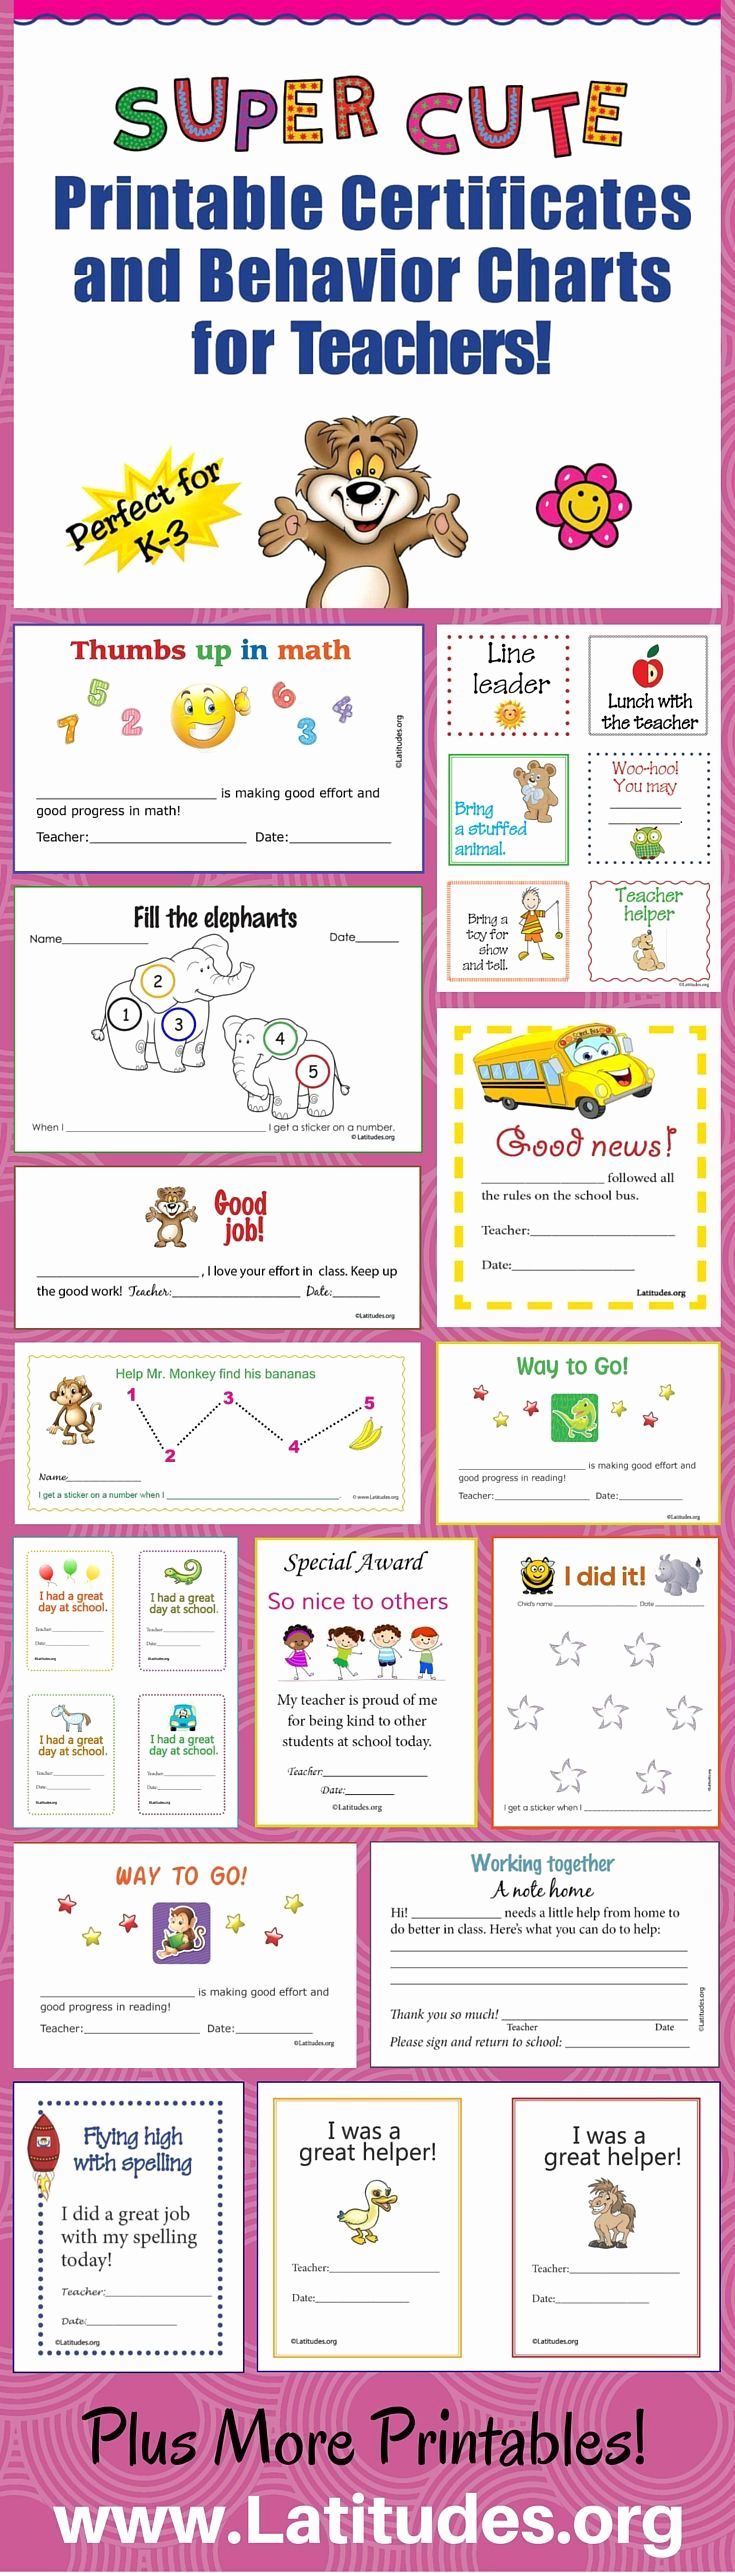 Behavior Charts for Teachers Best Of Free Super Cute Printable Certificates and Behavior Charts